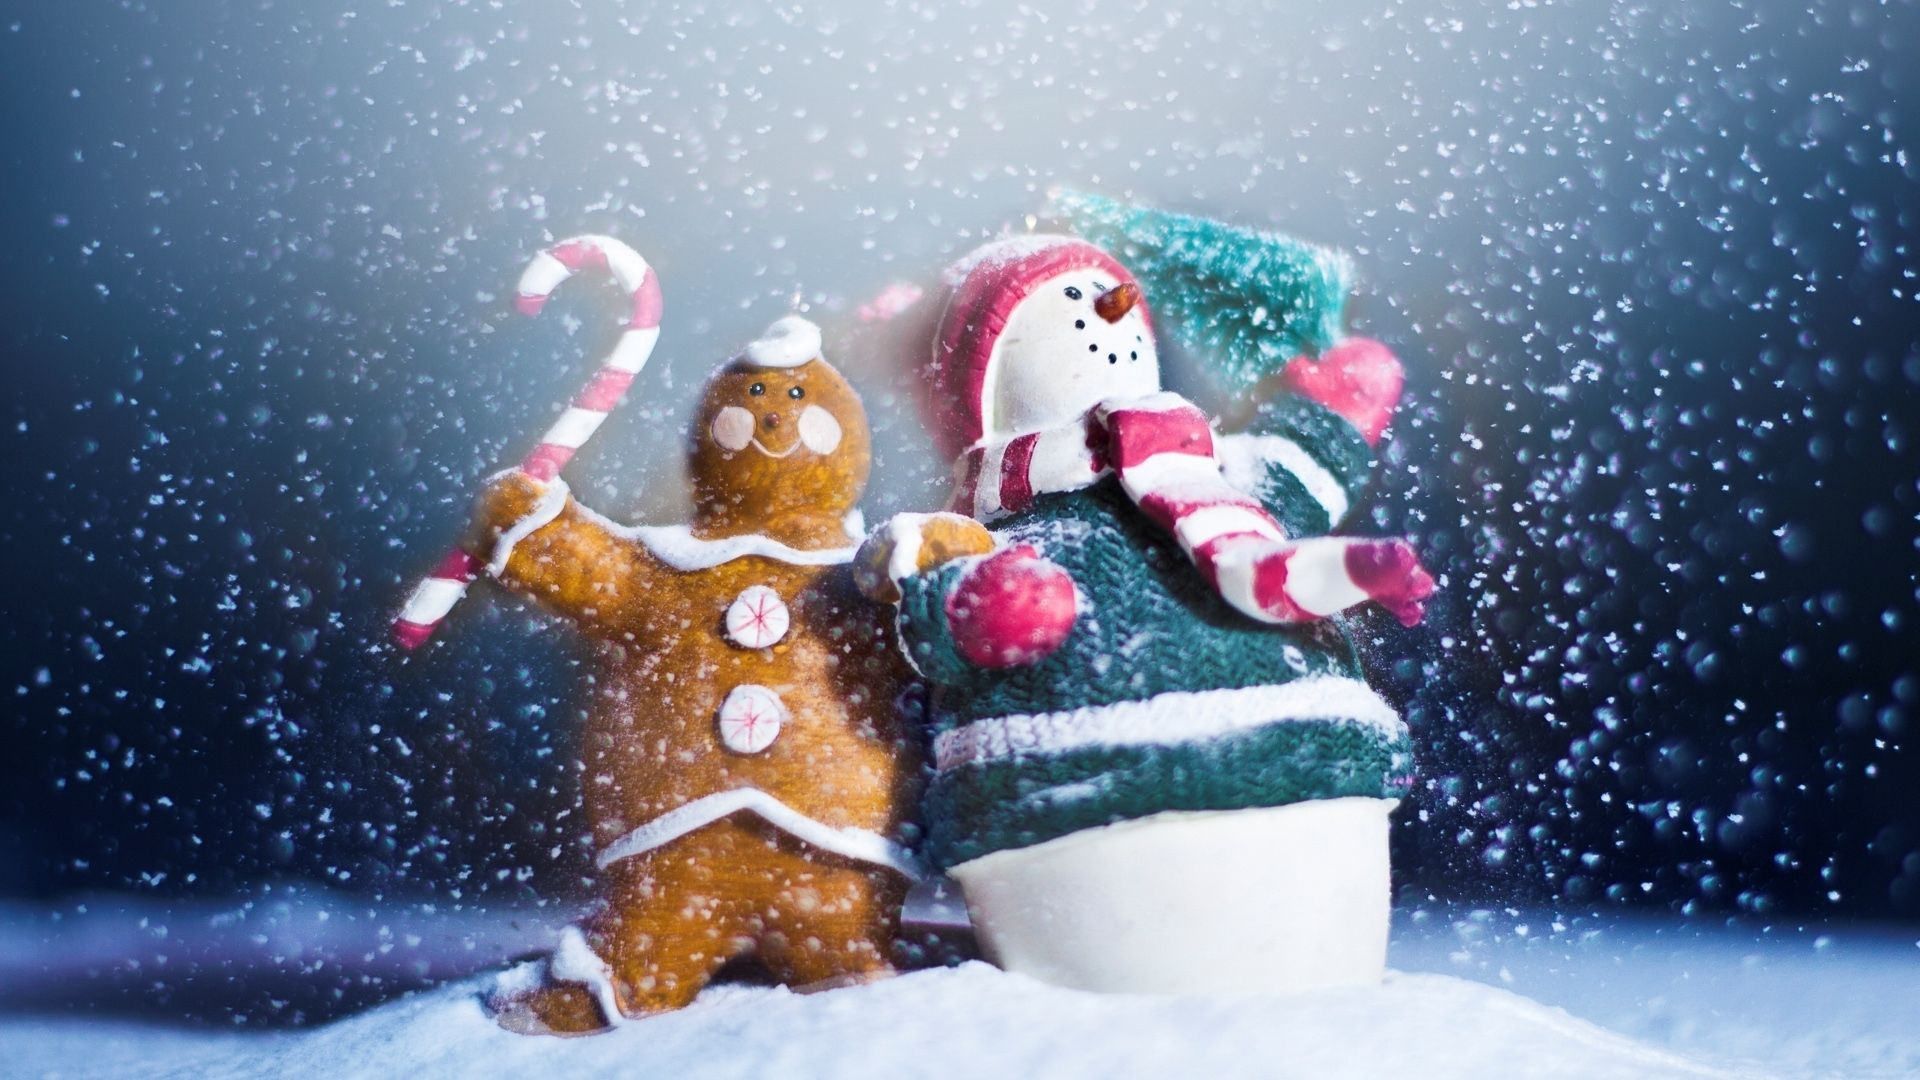 1920x1080 Wallpaper snowman, candy, cookies, holiday